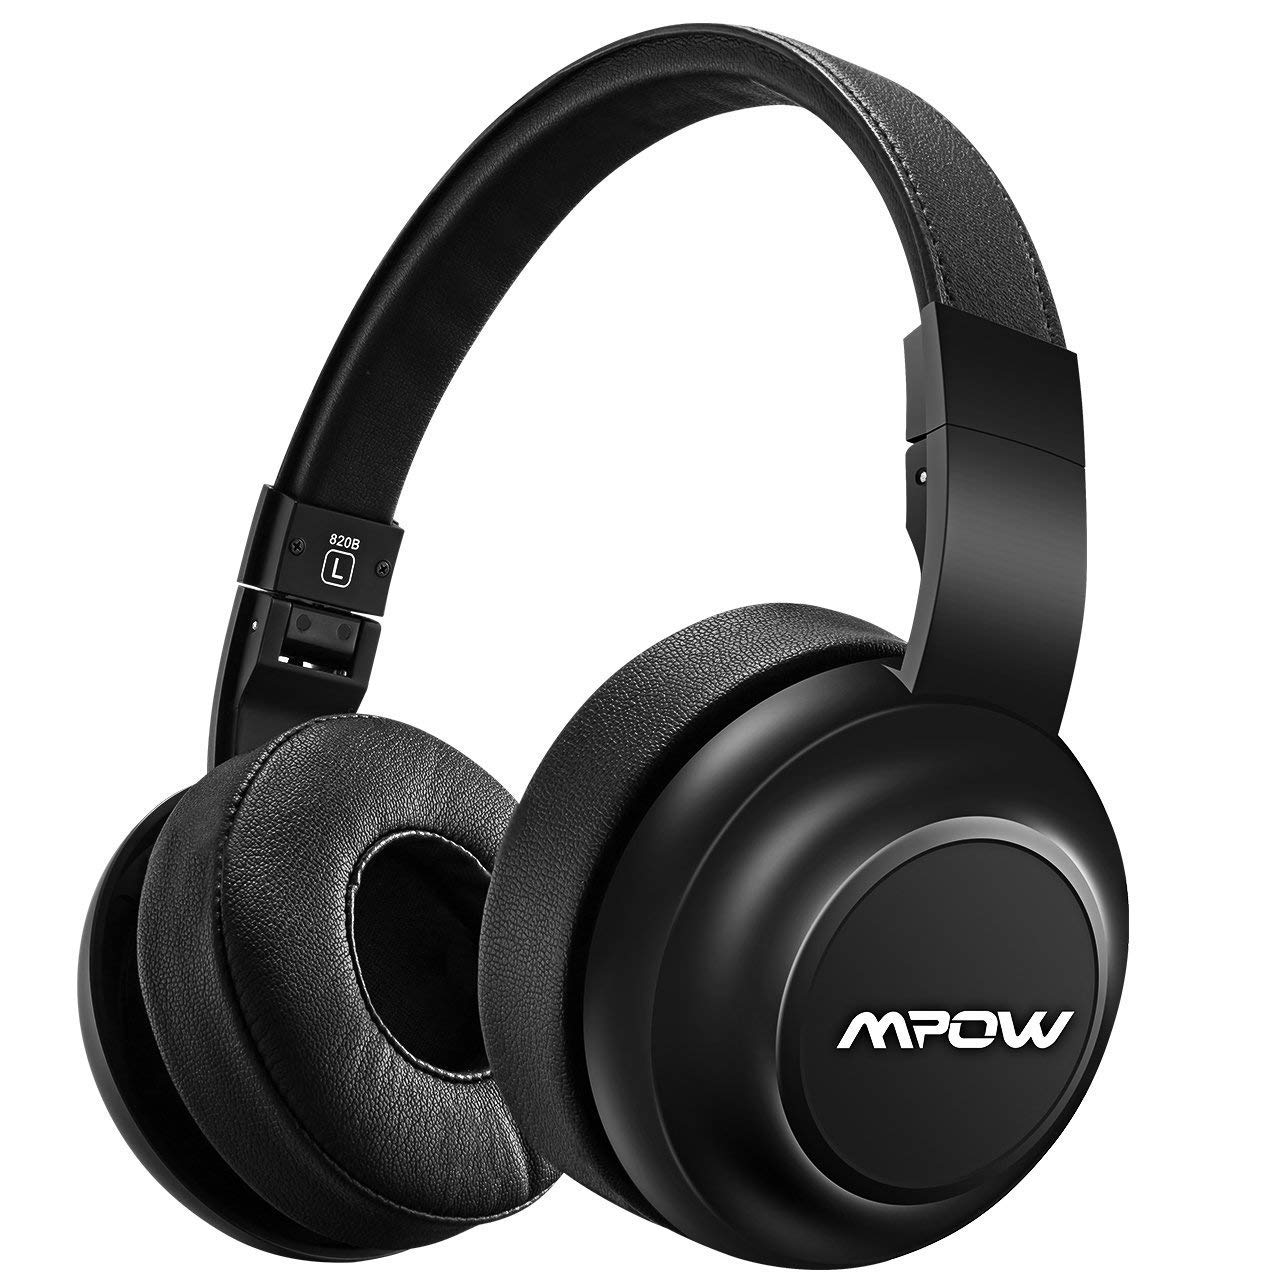 Mpow H2 [Upgrade] Bluetooth Headphones with 4 Equalizer Modes, Bass Treble Rock Natural Stereo Headset, Both Wired & Wireless Headphones On Ear for Cell Phone/TV/PC